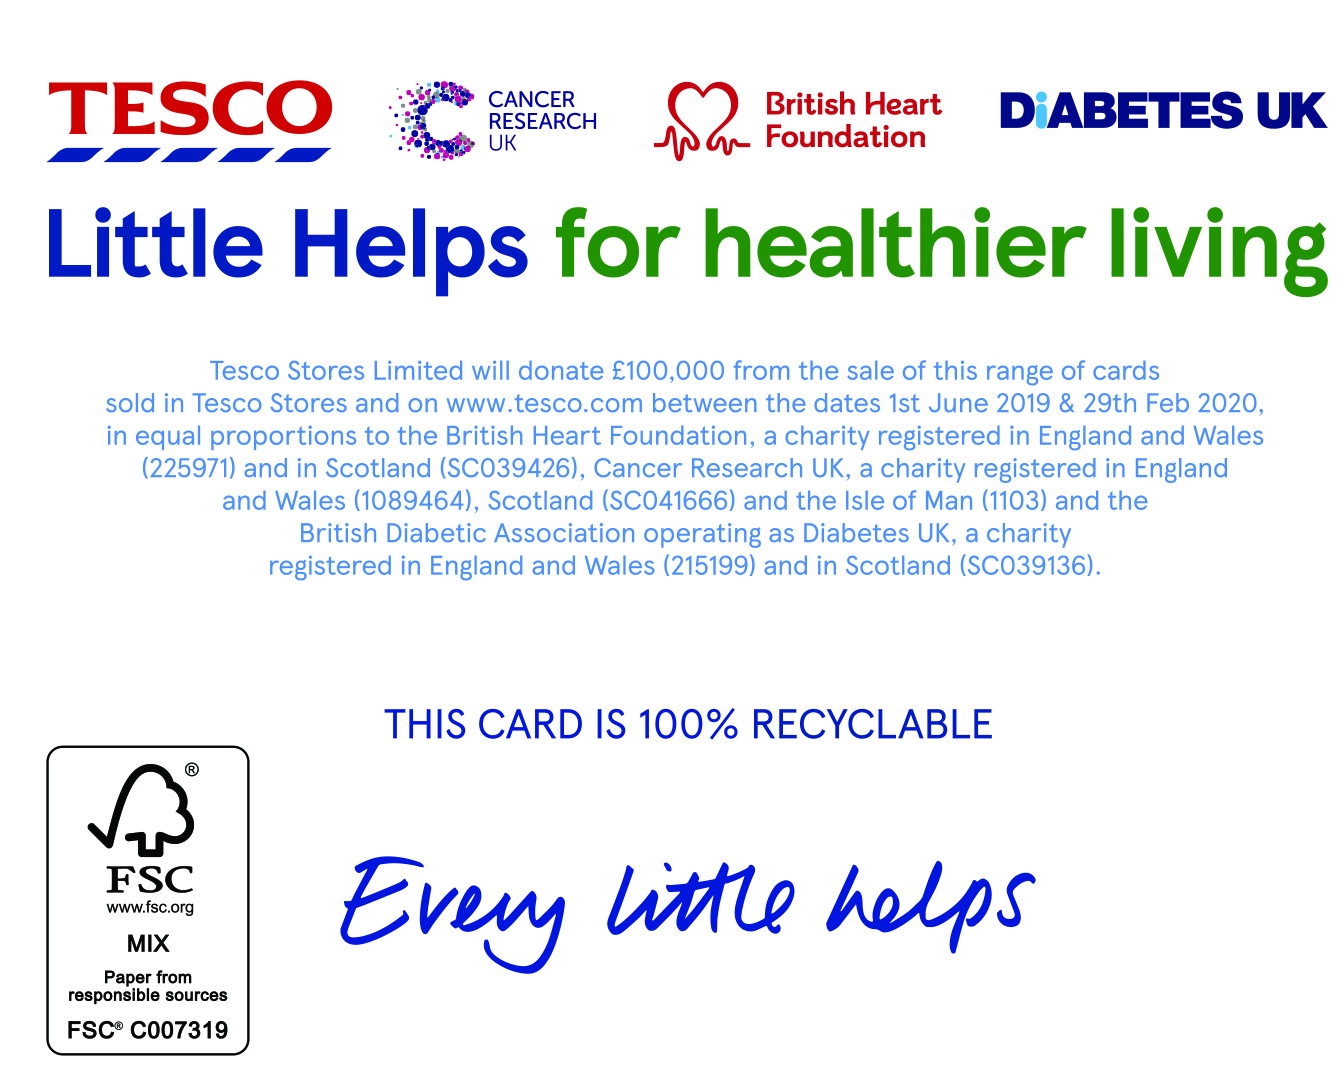 Above: The rear of the cards features all three charities' logos and explains the generous £100,000 donation the grocer is making as a result of the sale of the cards.